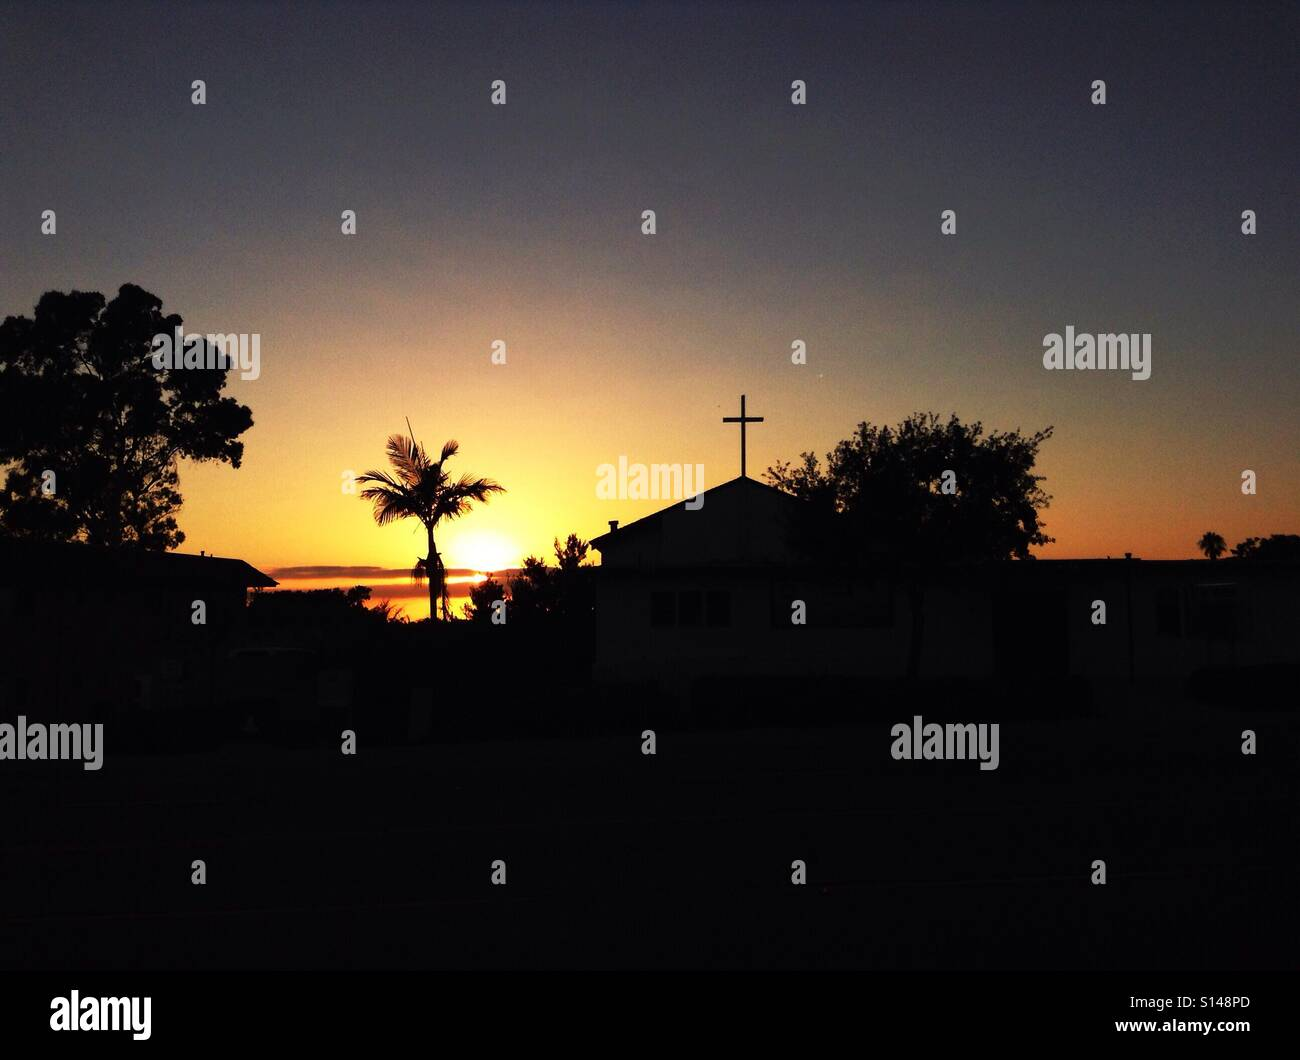 Sunset, Church Sillouette - Stock Image